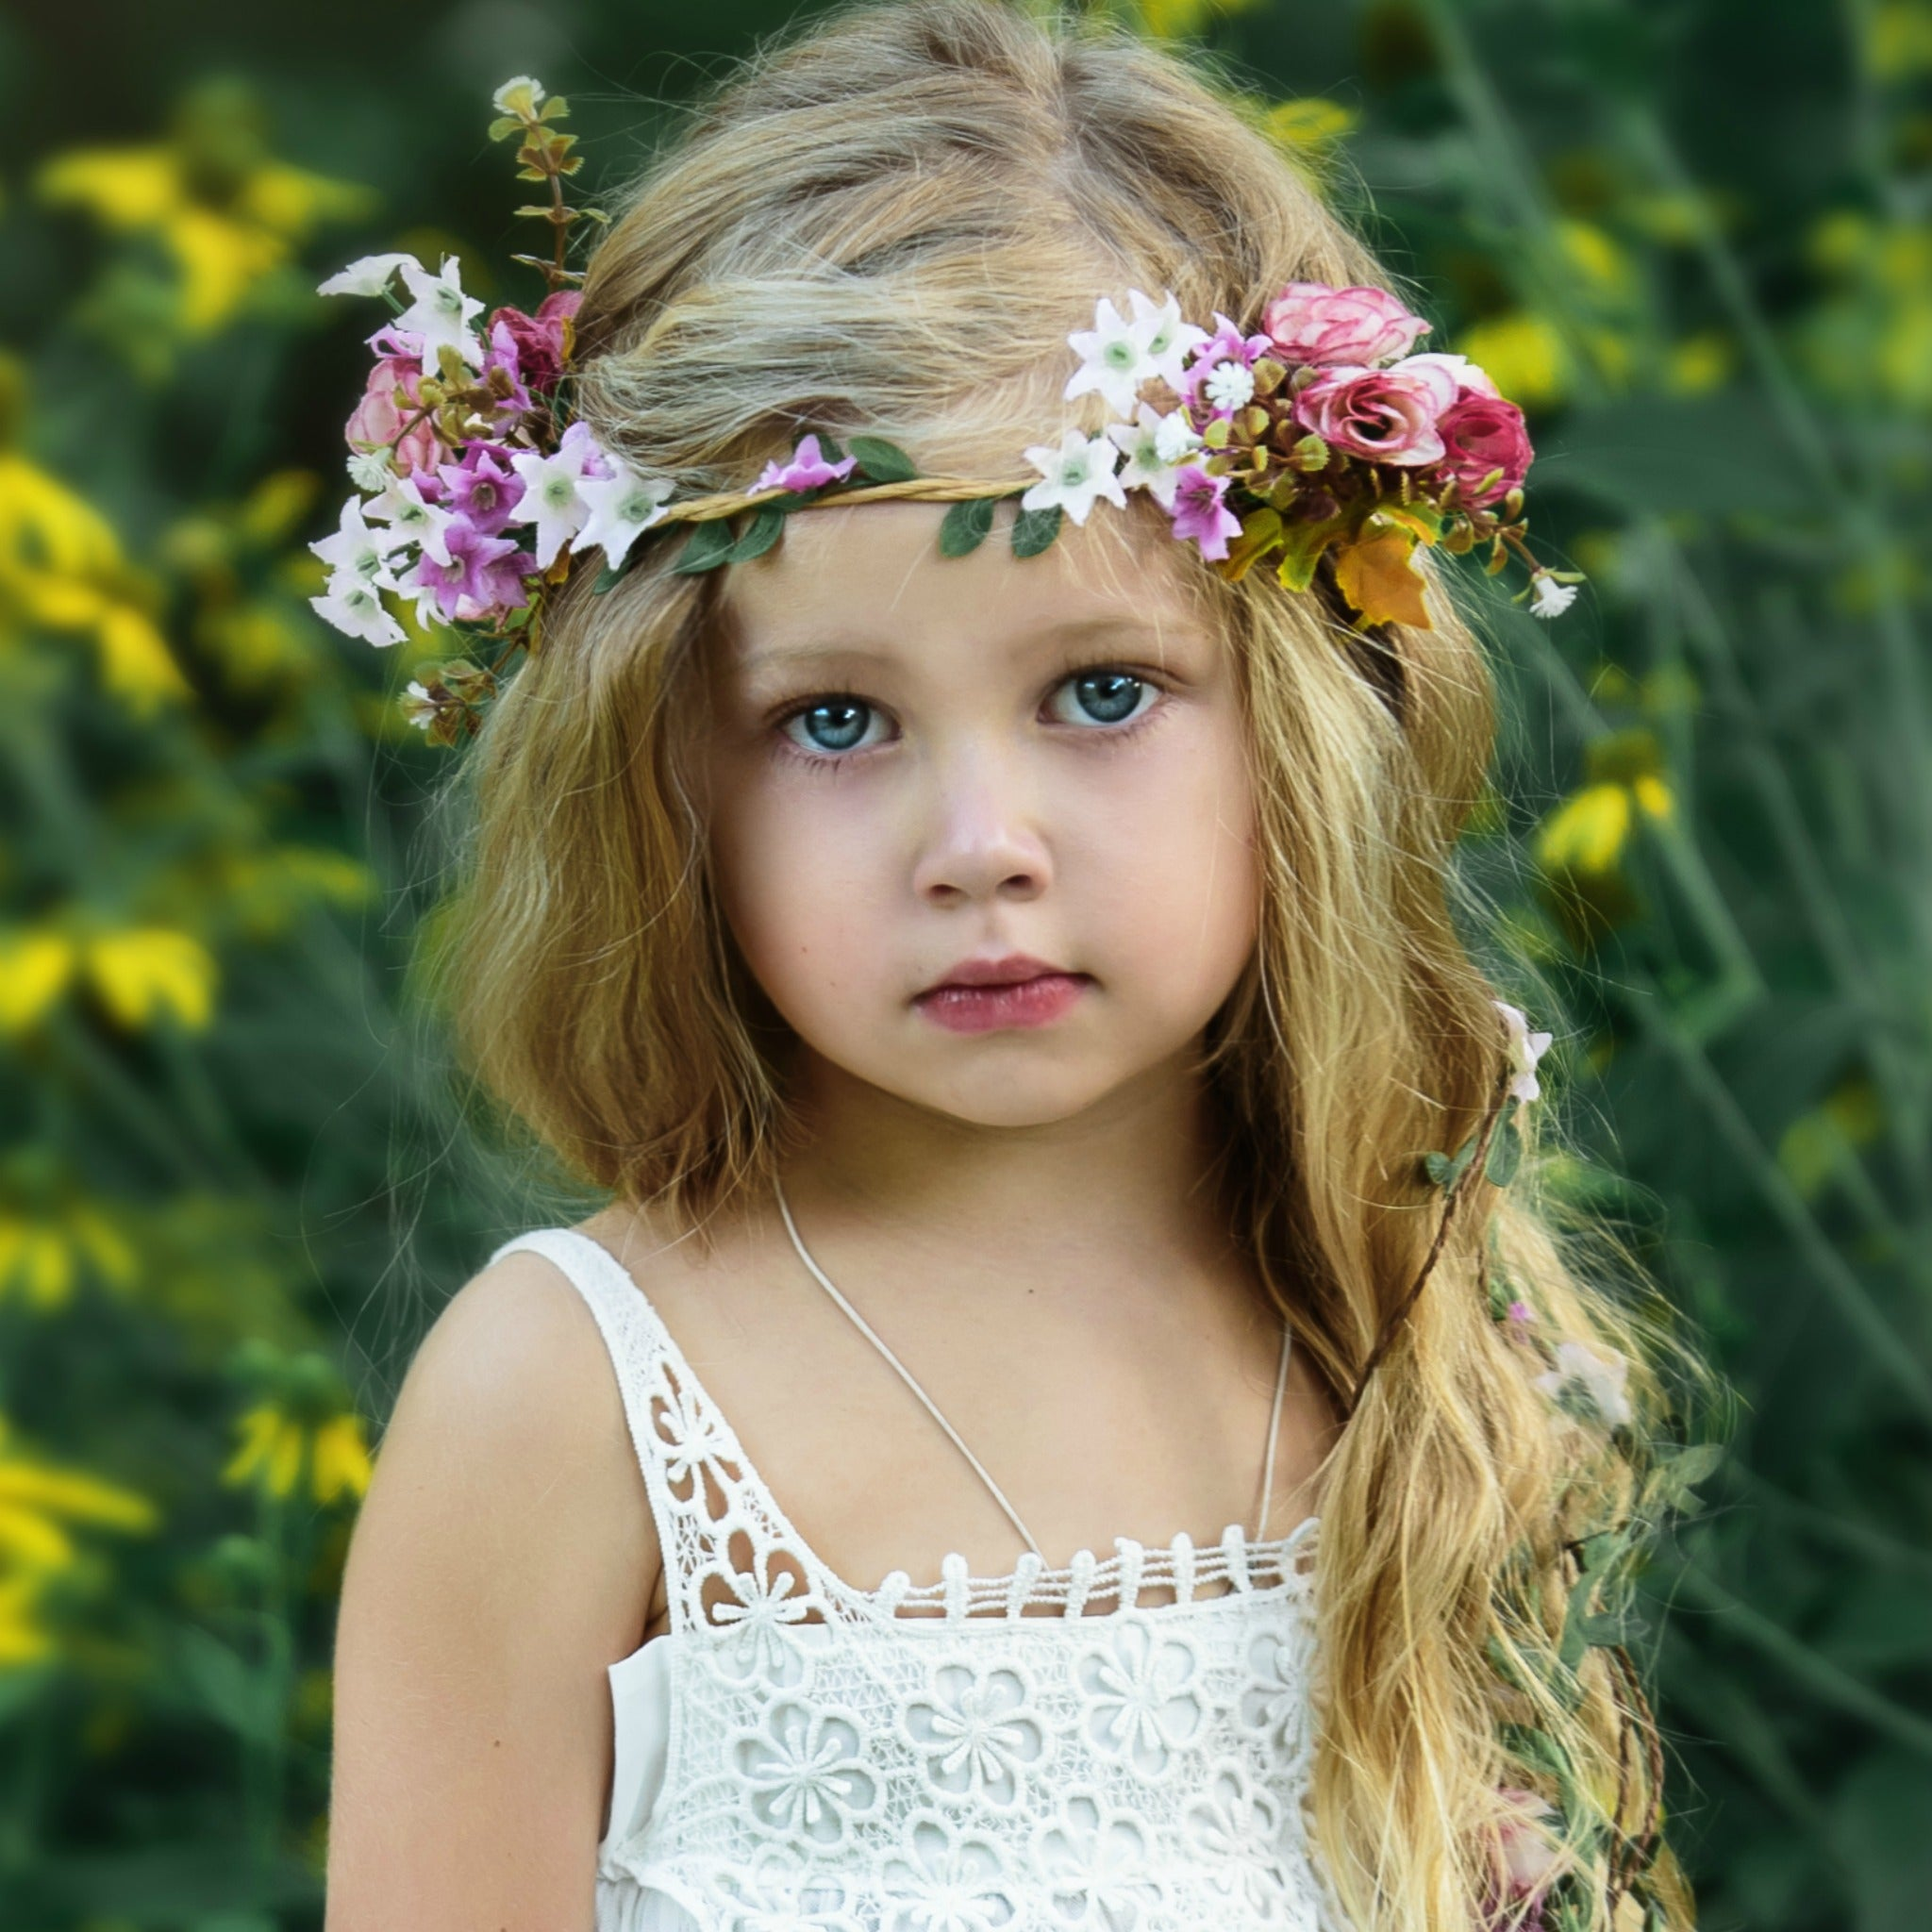 Flower girl flower crown gallery flower wallpaper hd crown for flower girl choice image flower wallpaper hd silk flower crown fleur and lace boutique izmirmasajfo